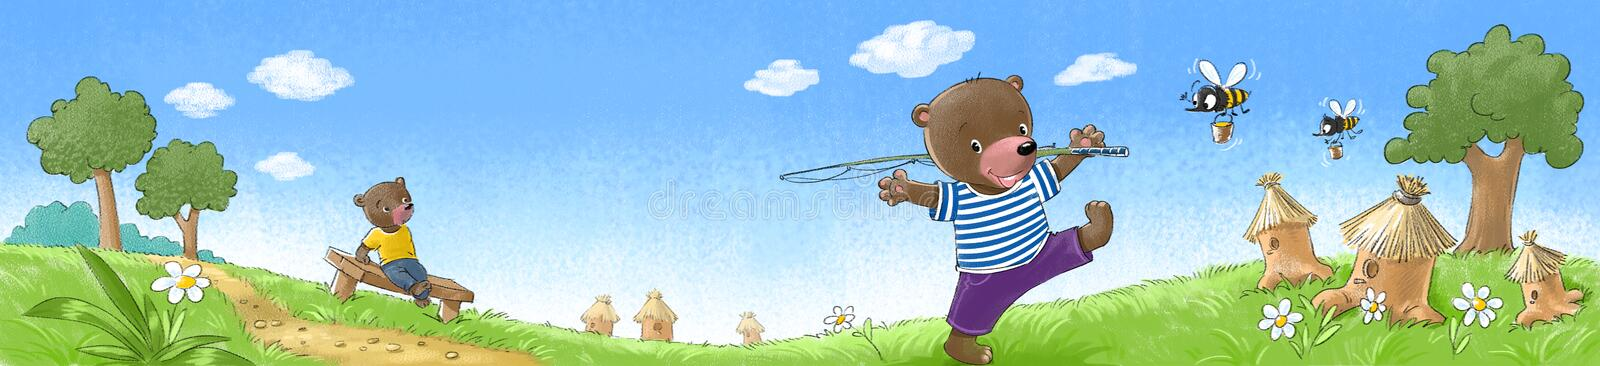 Bears on the lawn. Two happy bears with on the lawn with hives and bees royalty free illustration